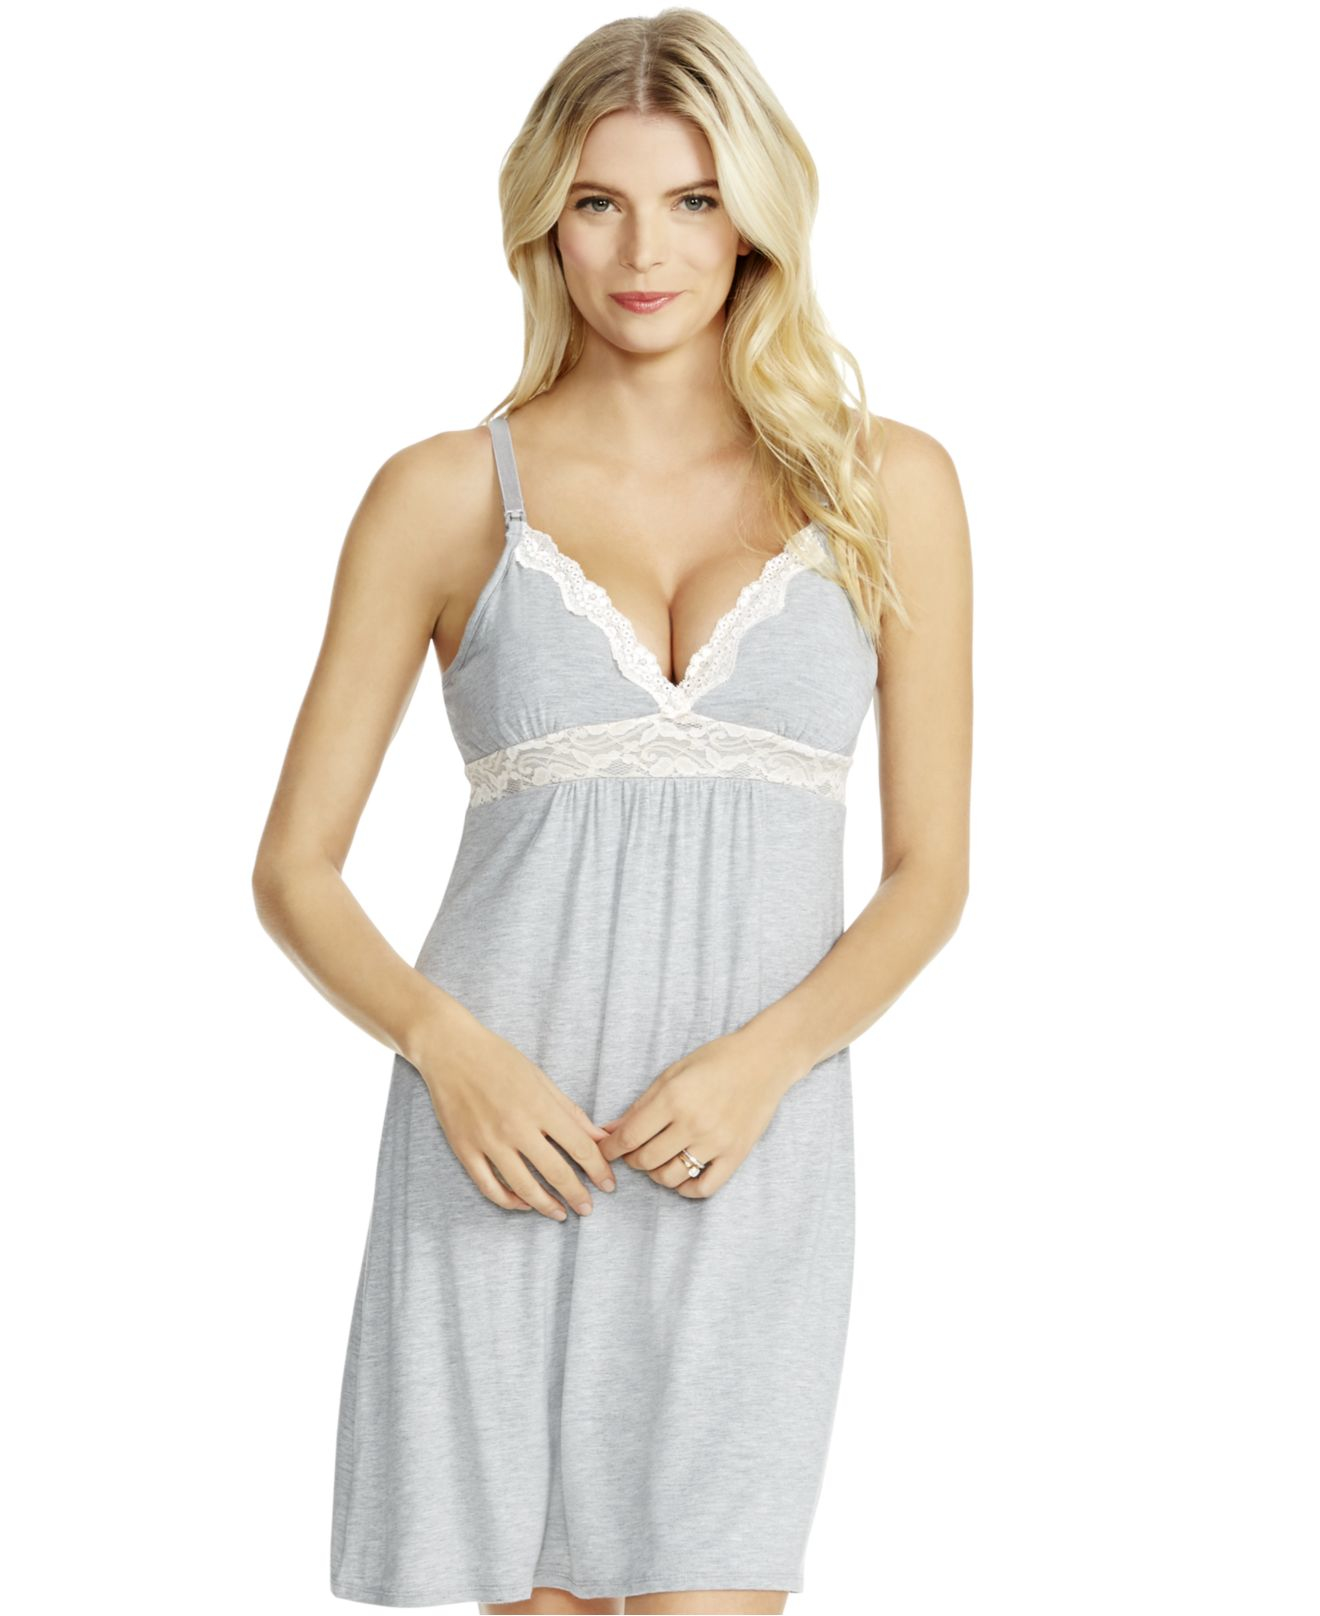 17e471142f4d7 Jessica Simpson Nursing Lace Nightgown in Gray - Lyst